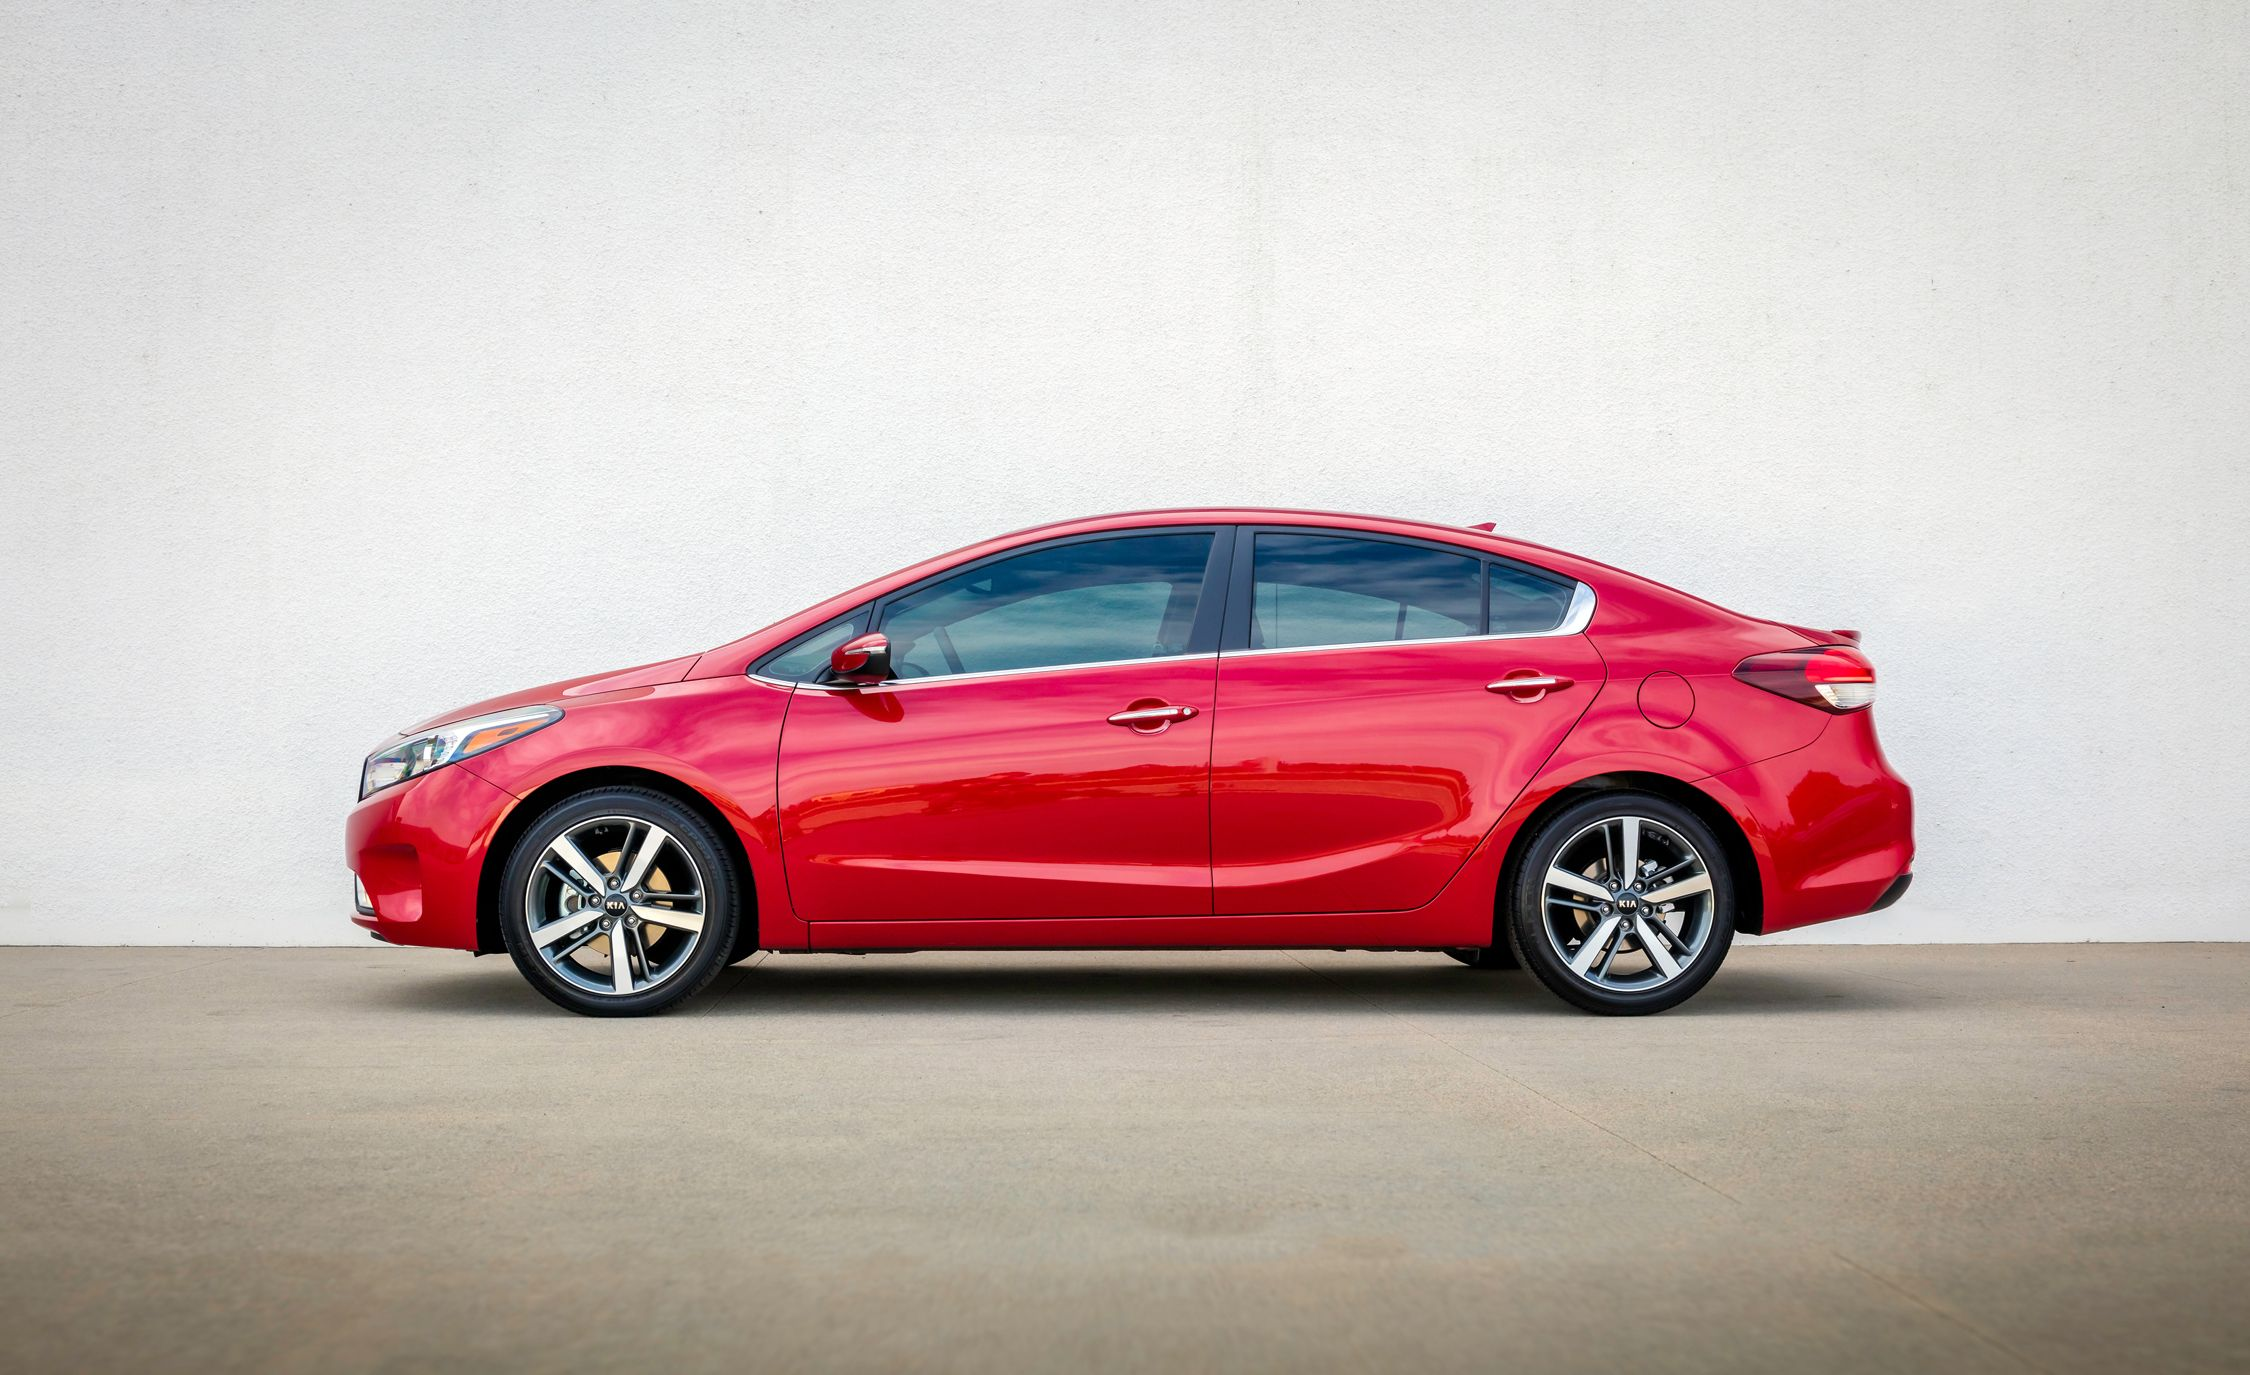 2018 Kia Forte Forte5 Warranty And Maintenance Coverage Review